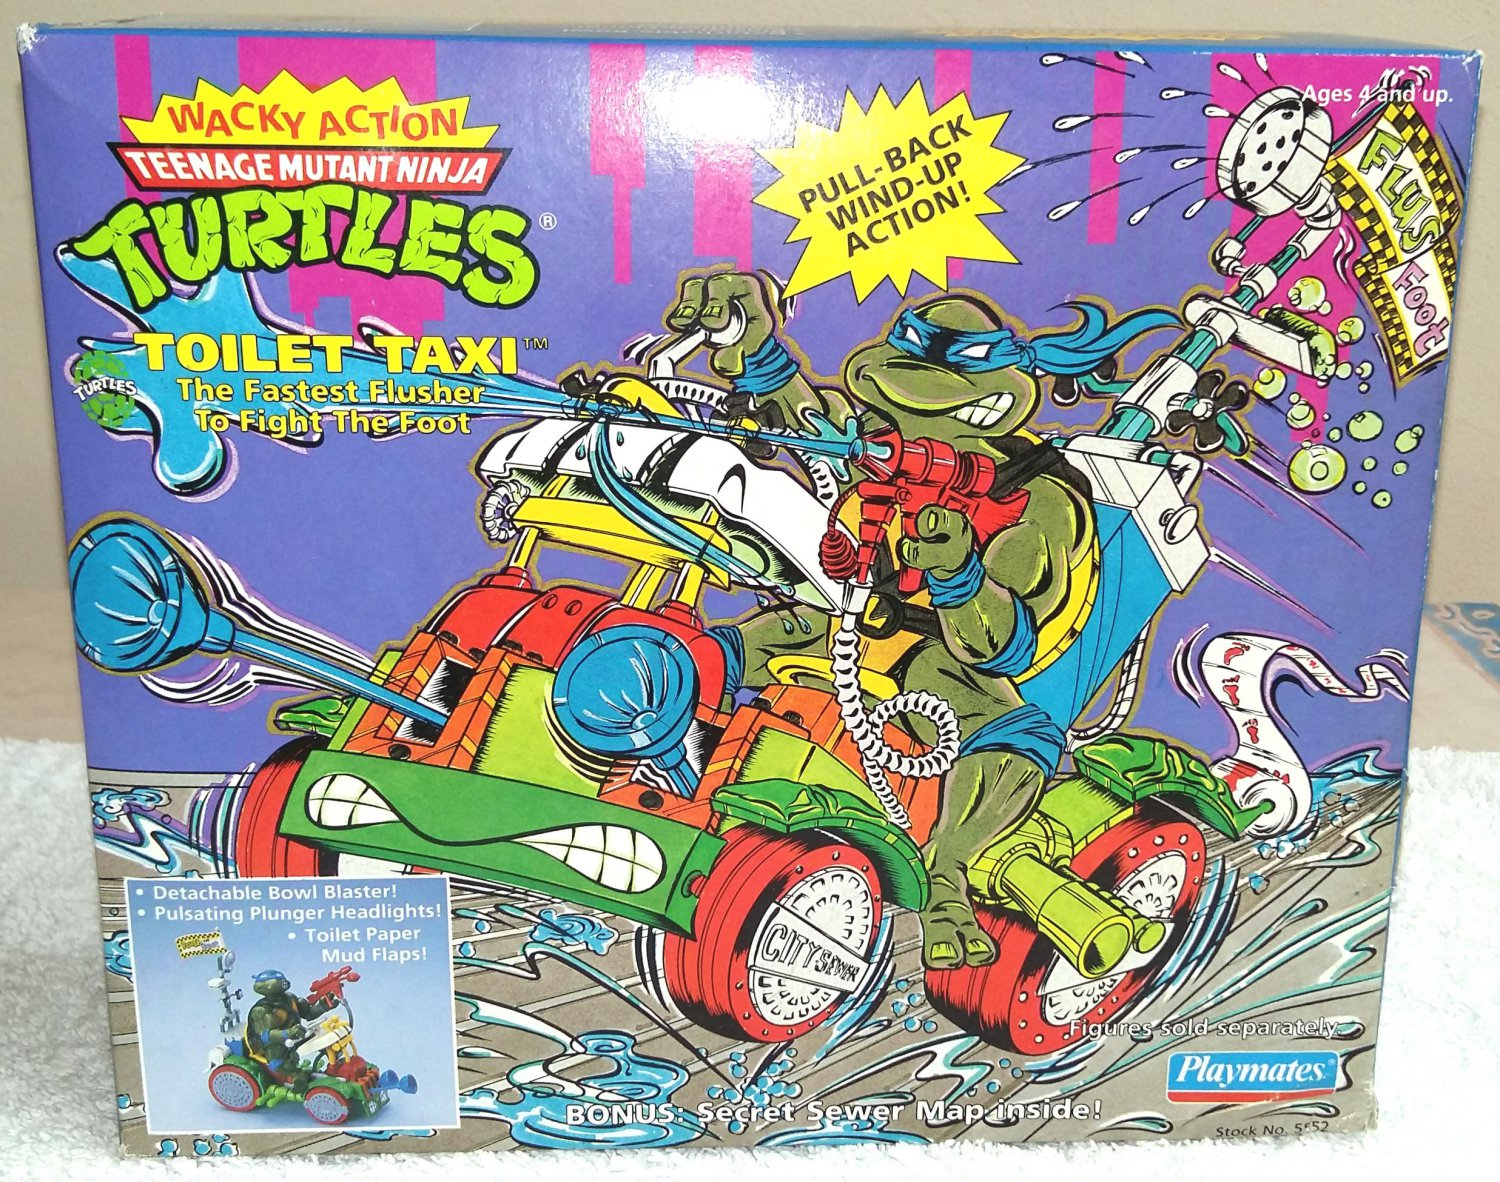 Toilet Taxi Teenage Mutant Ninja Turtles Wacky Action TMNT Playmates 1990